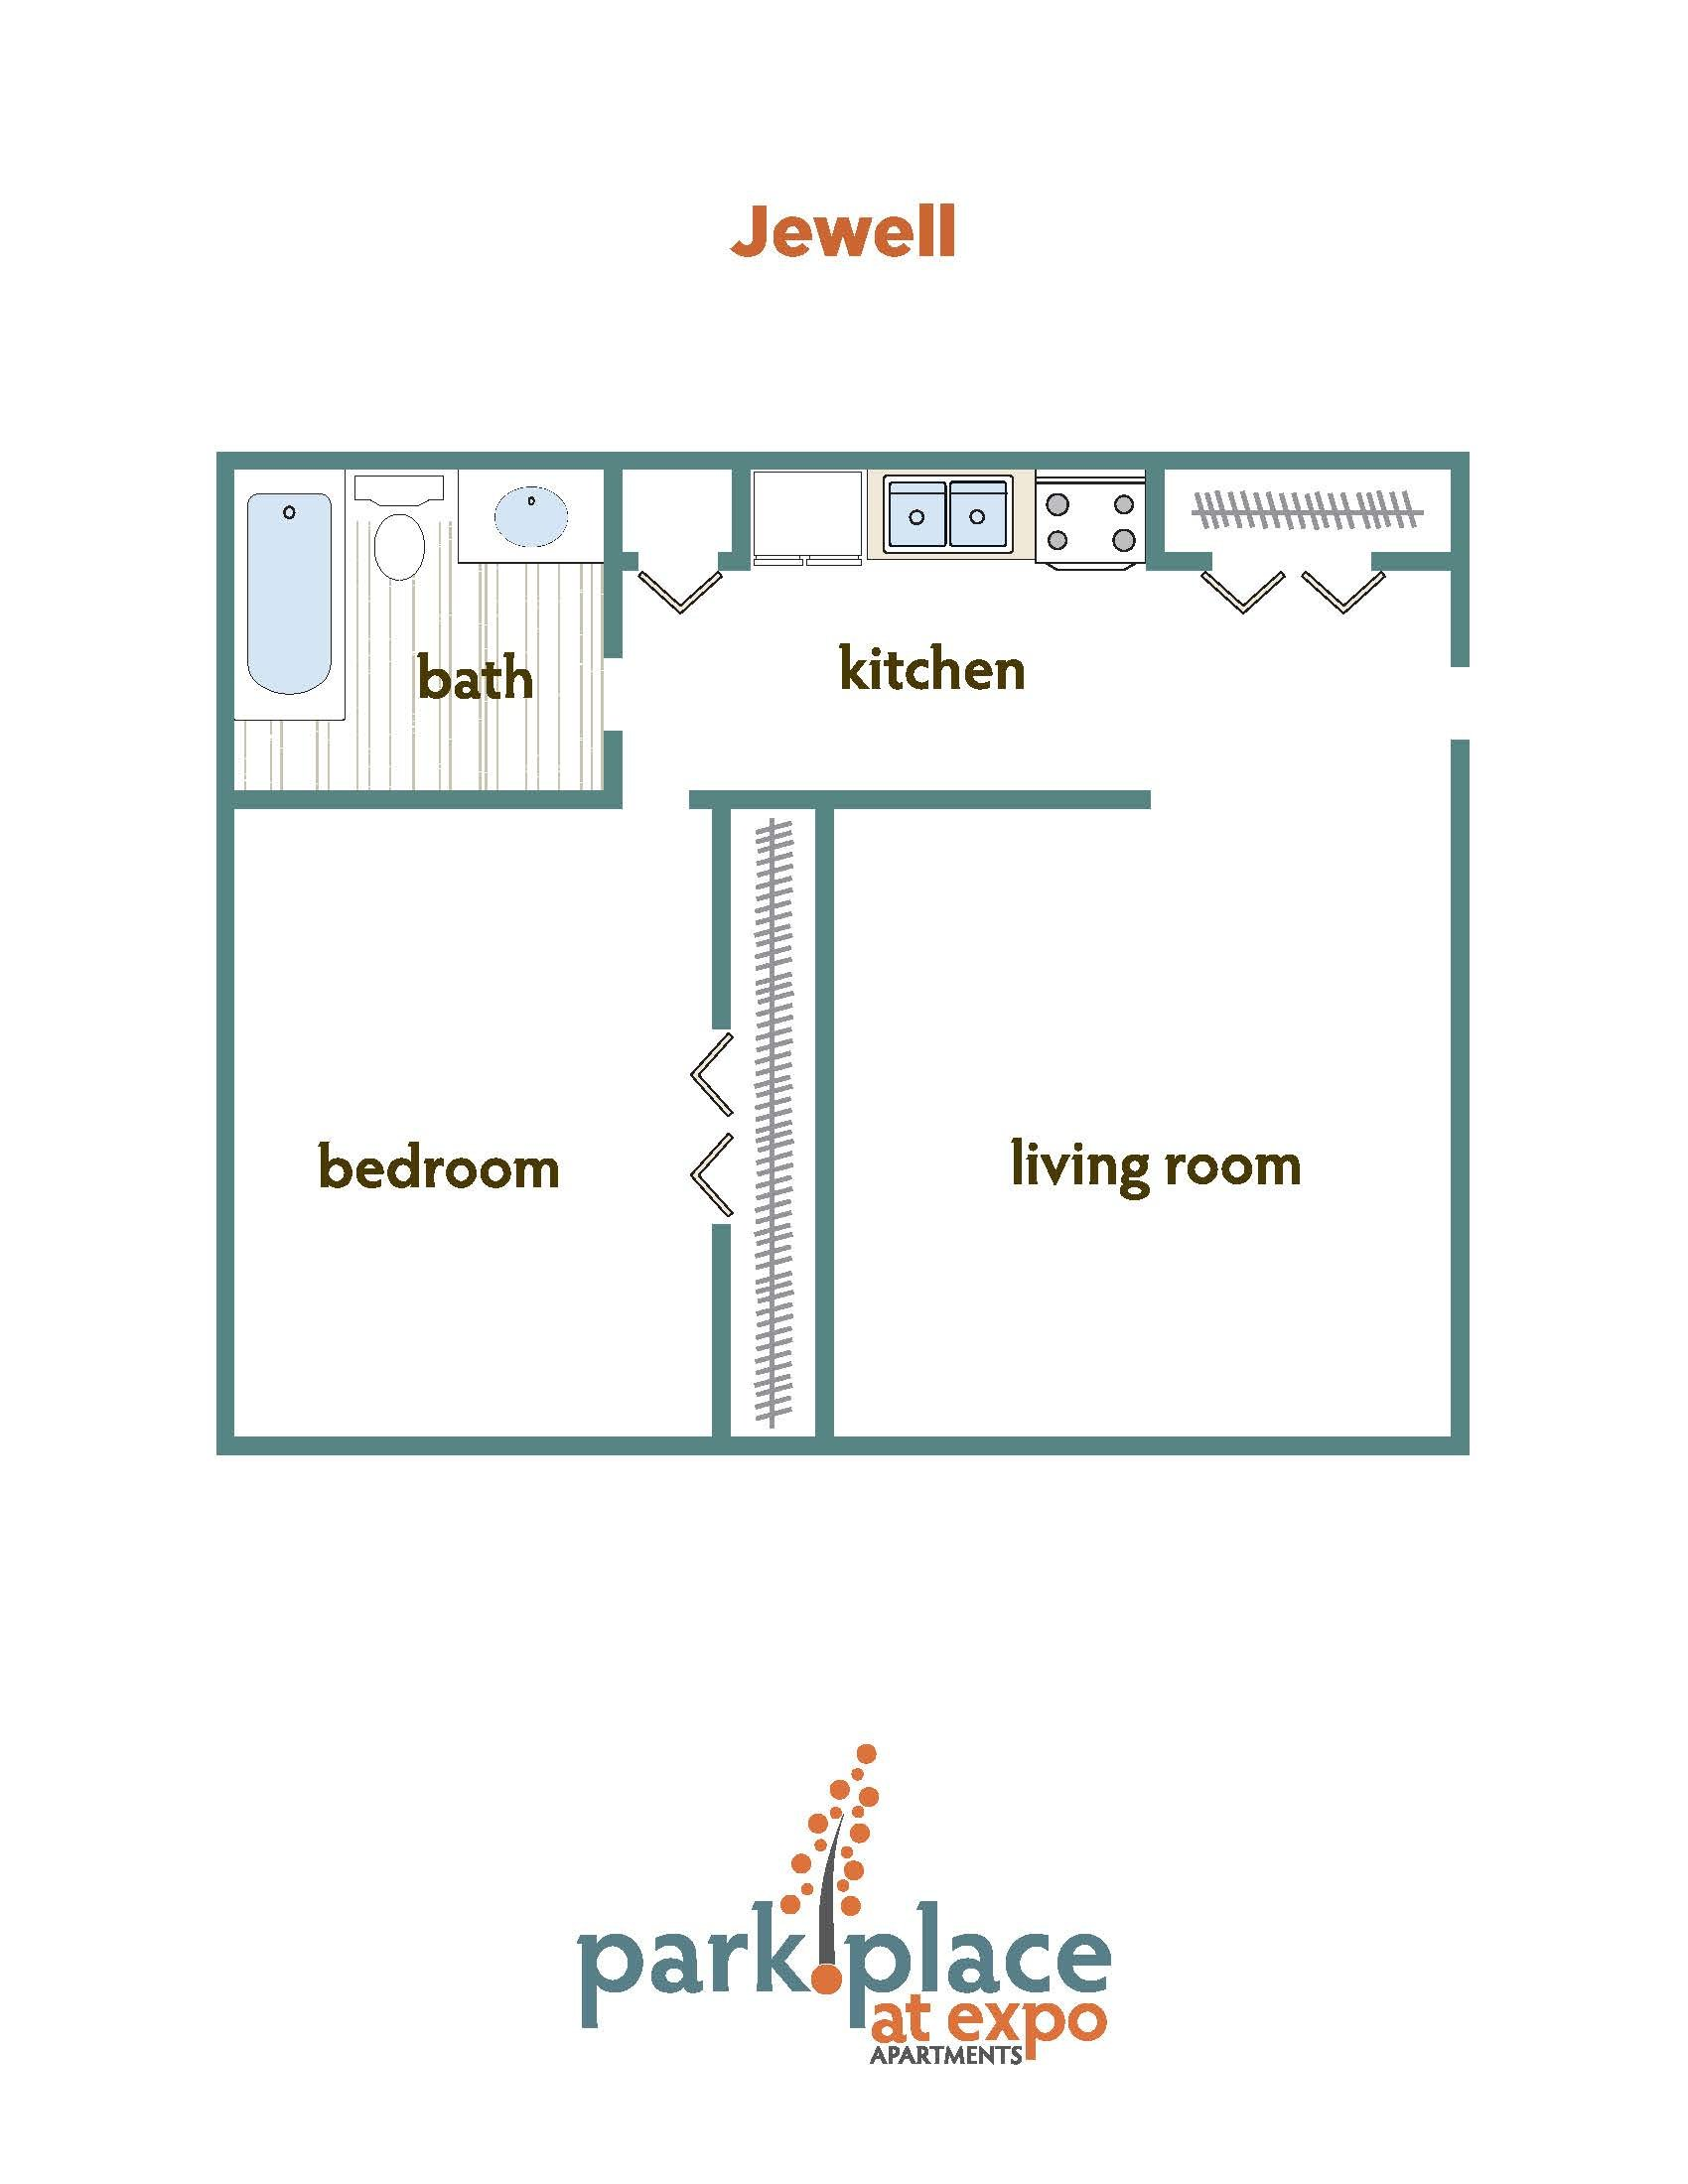 Jewell floorplan